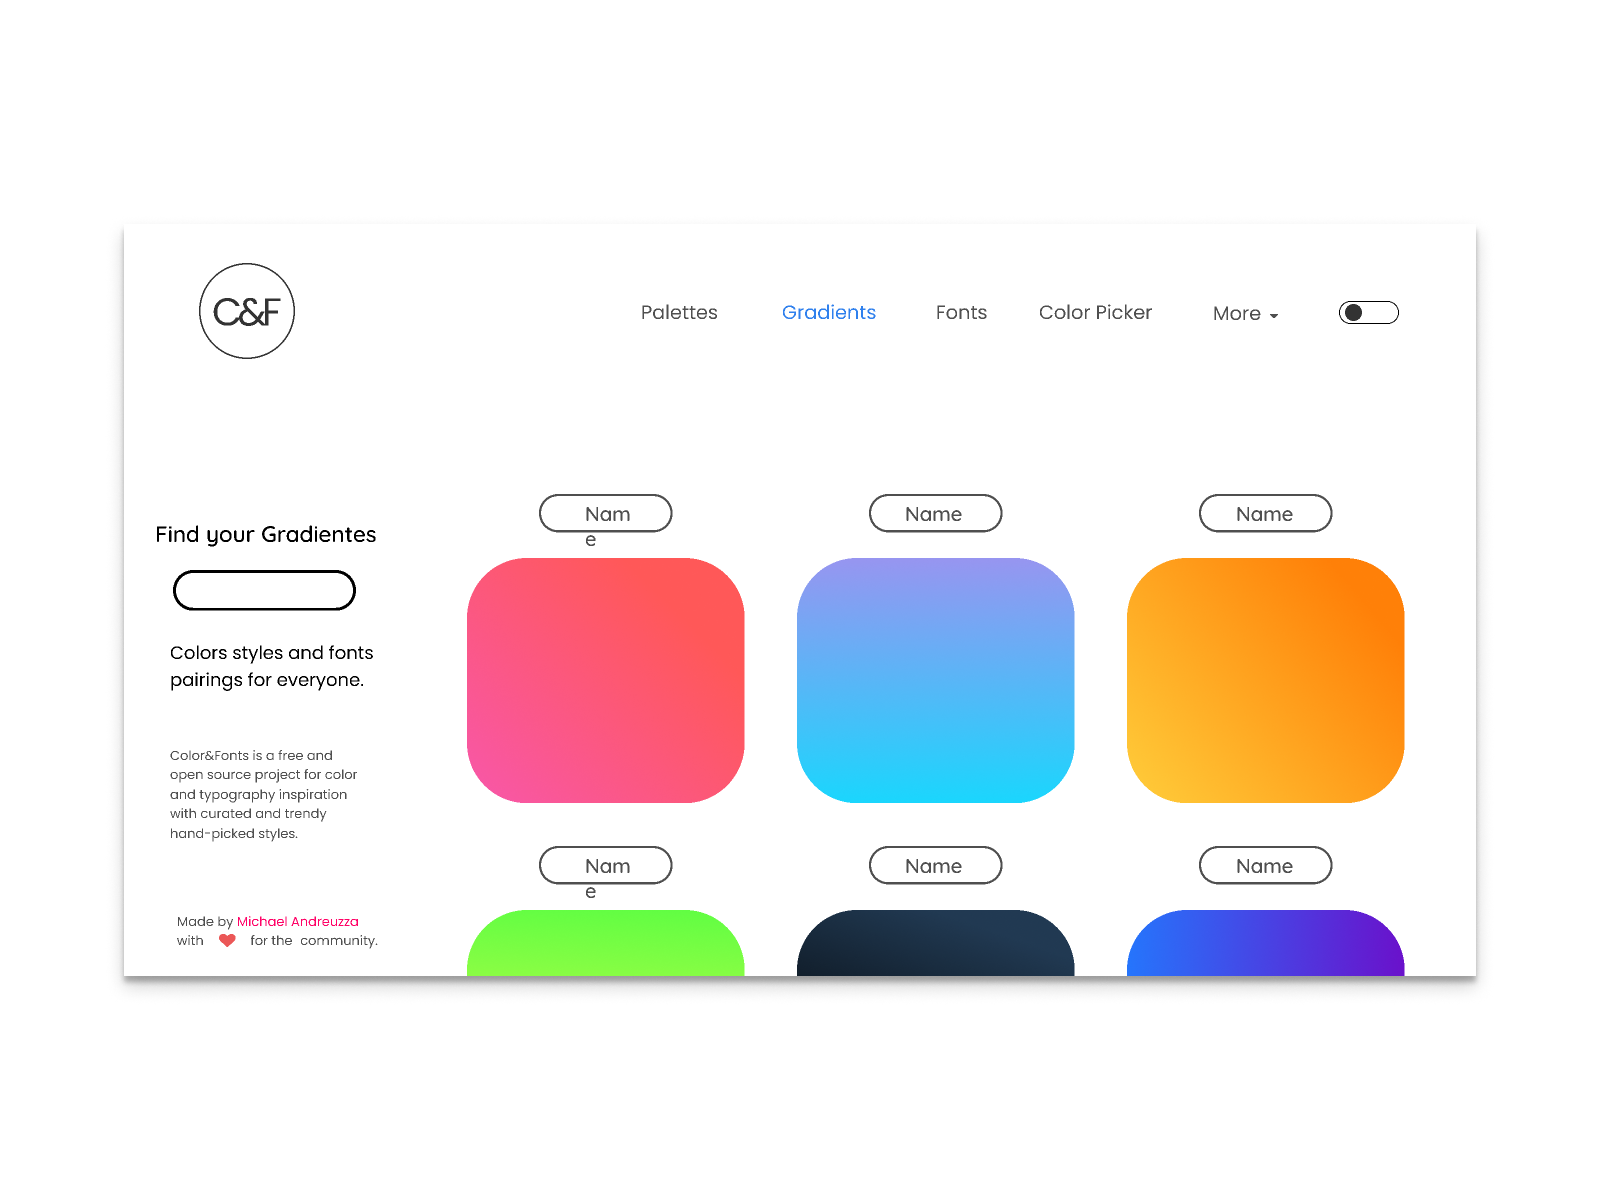 Dribbble - figma png by Michael Andreuzza